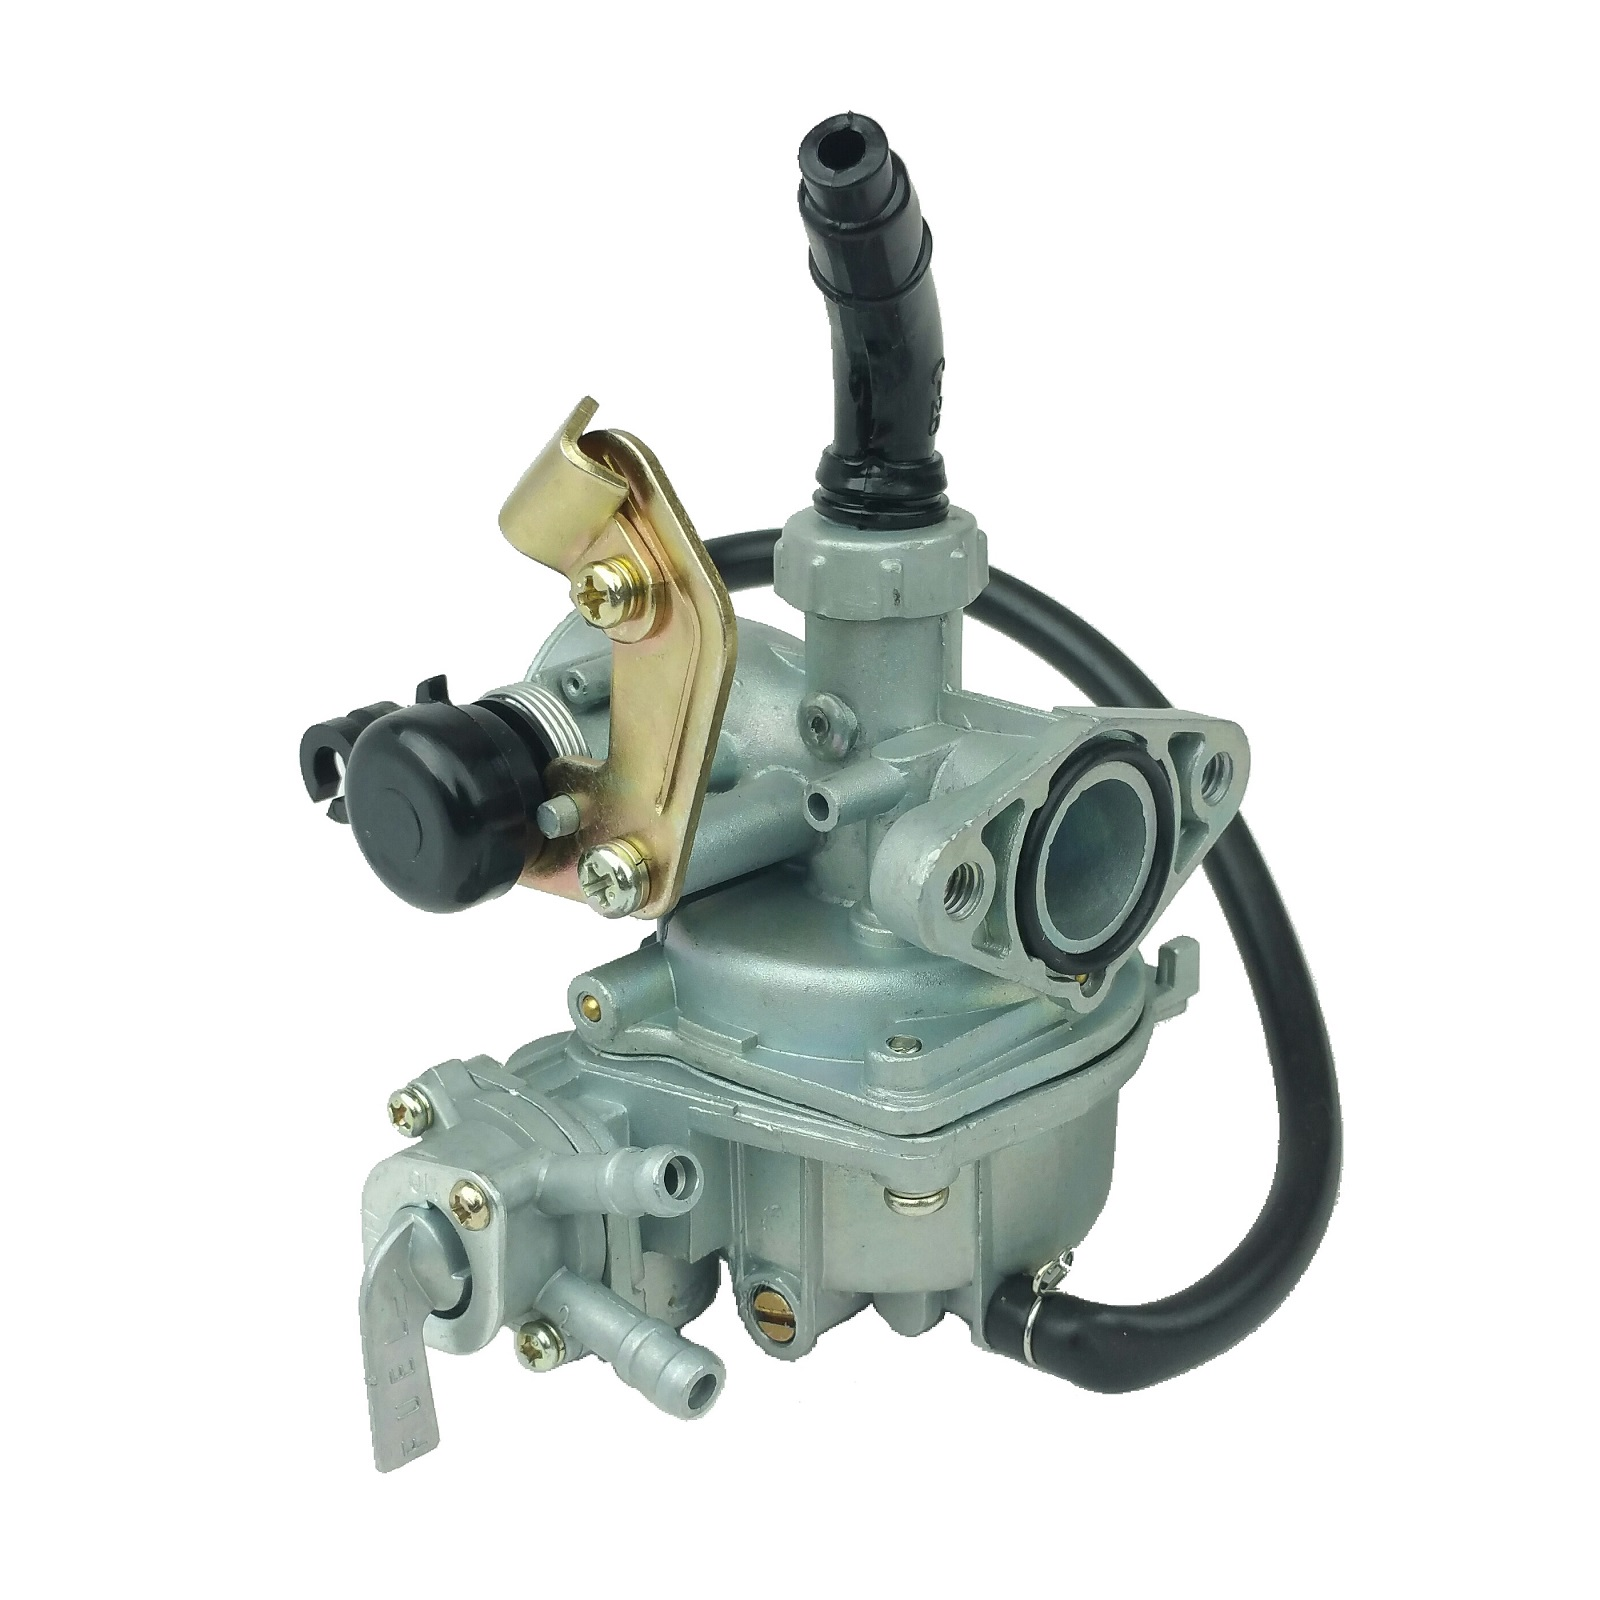 Carburetor, Cable Choke HONDA C70 C 70 DAS ST70 PASSPORT Cub C90 CARB